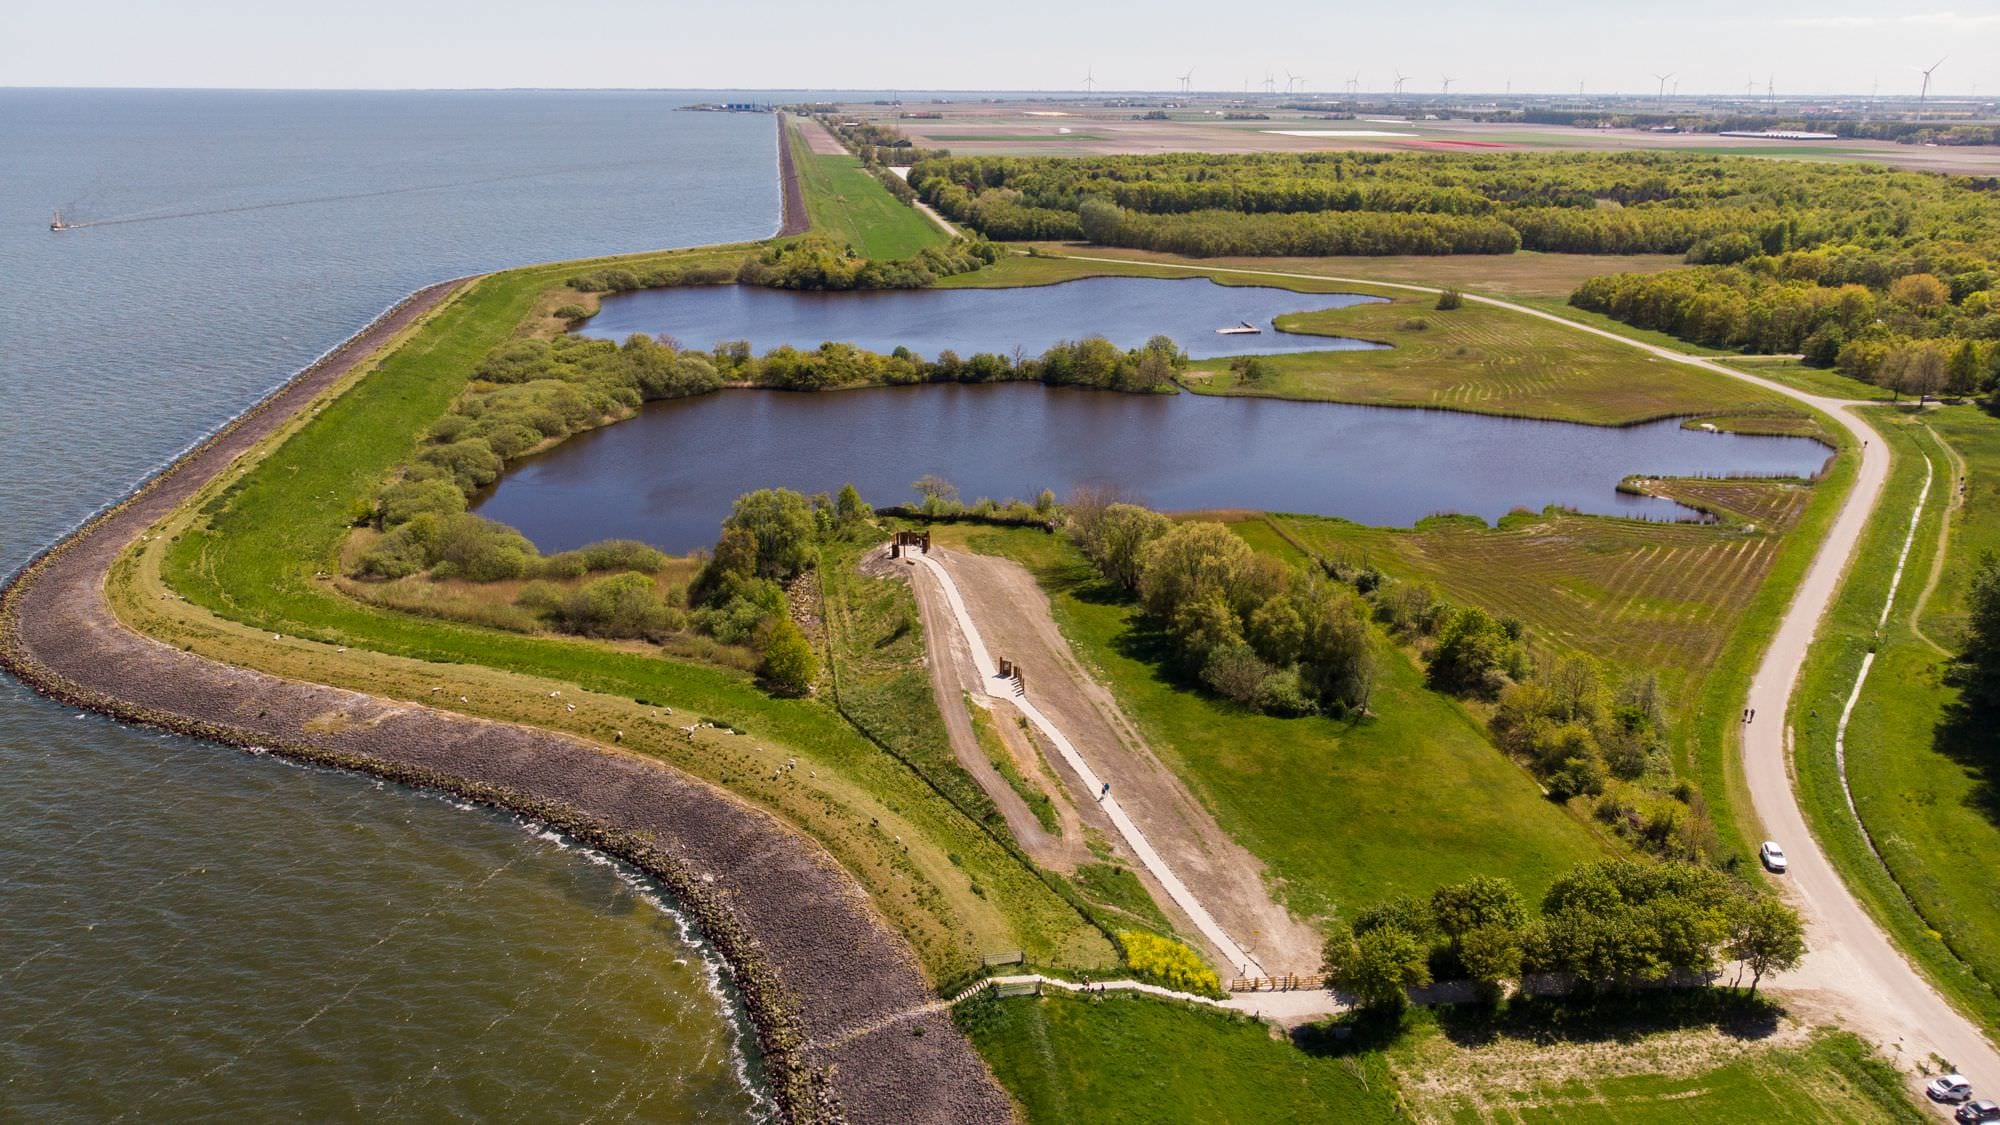 Drone photo shows World War II dike breach in The Netherlands